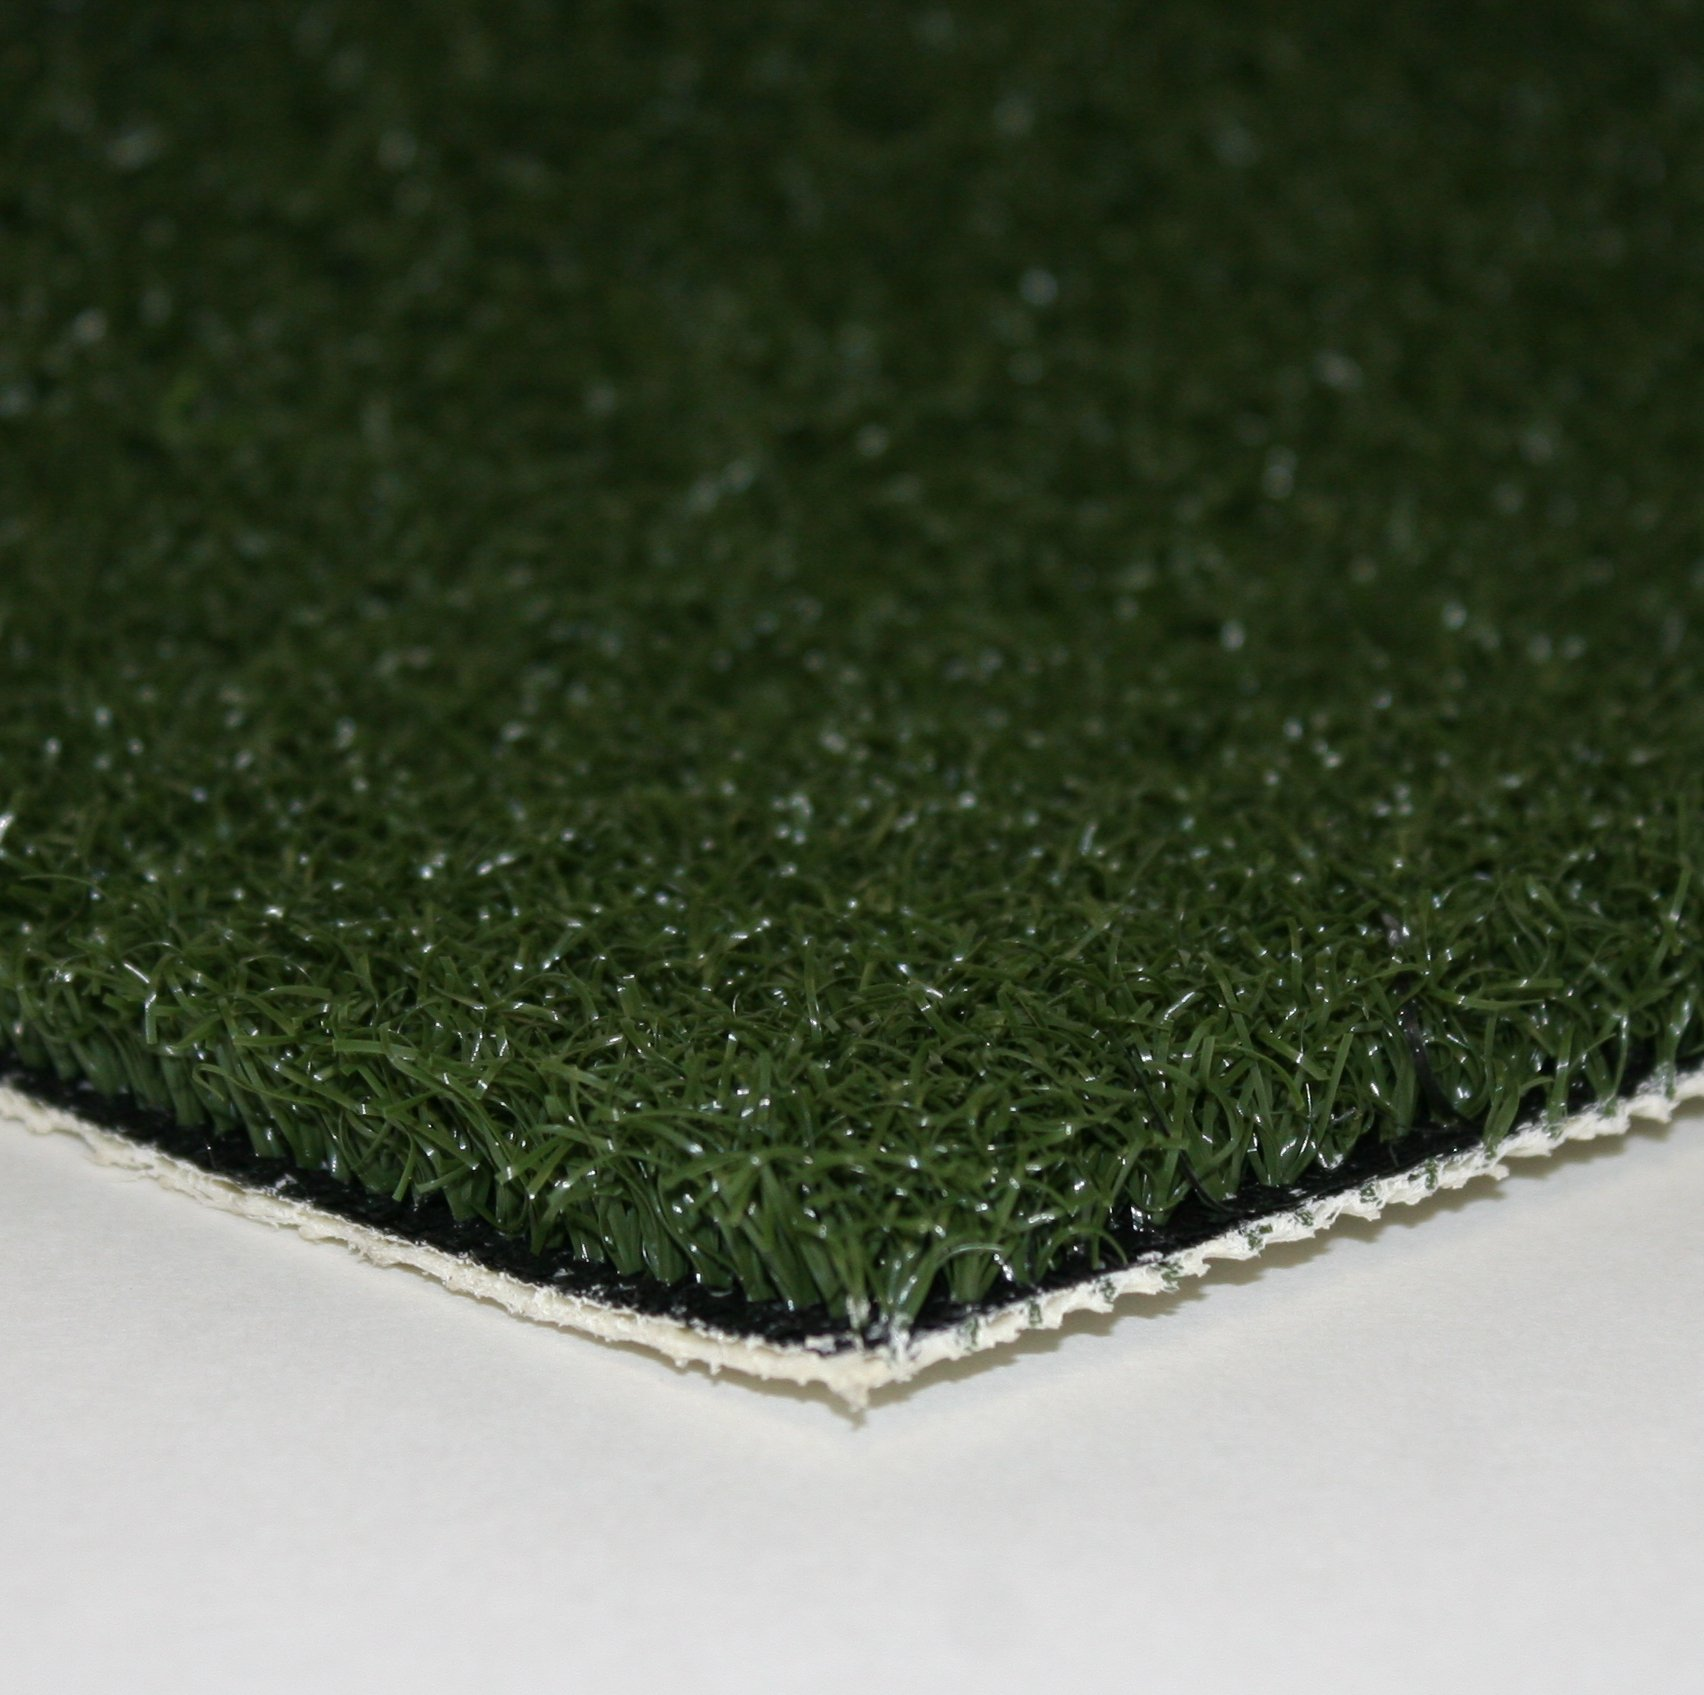 Duromats Golf Putting Practice Mat 3' x 12' for indoors/outdoors use, made in U.S.A.